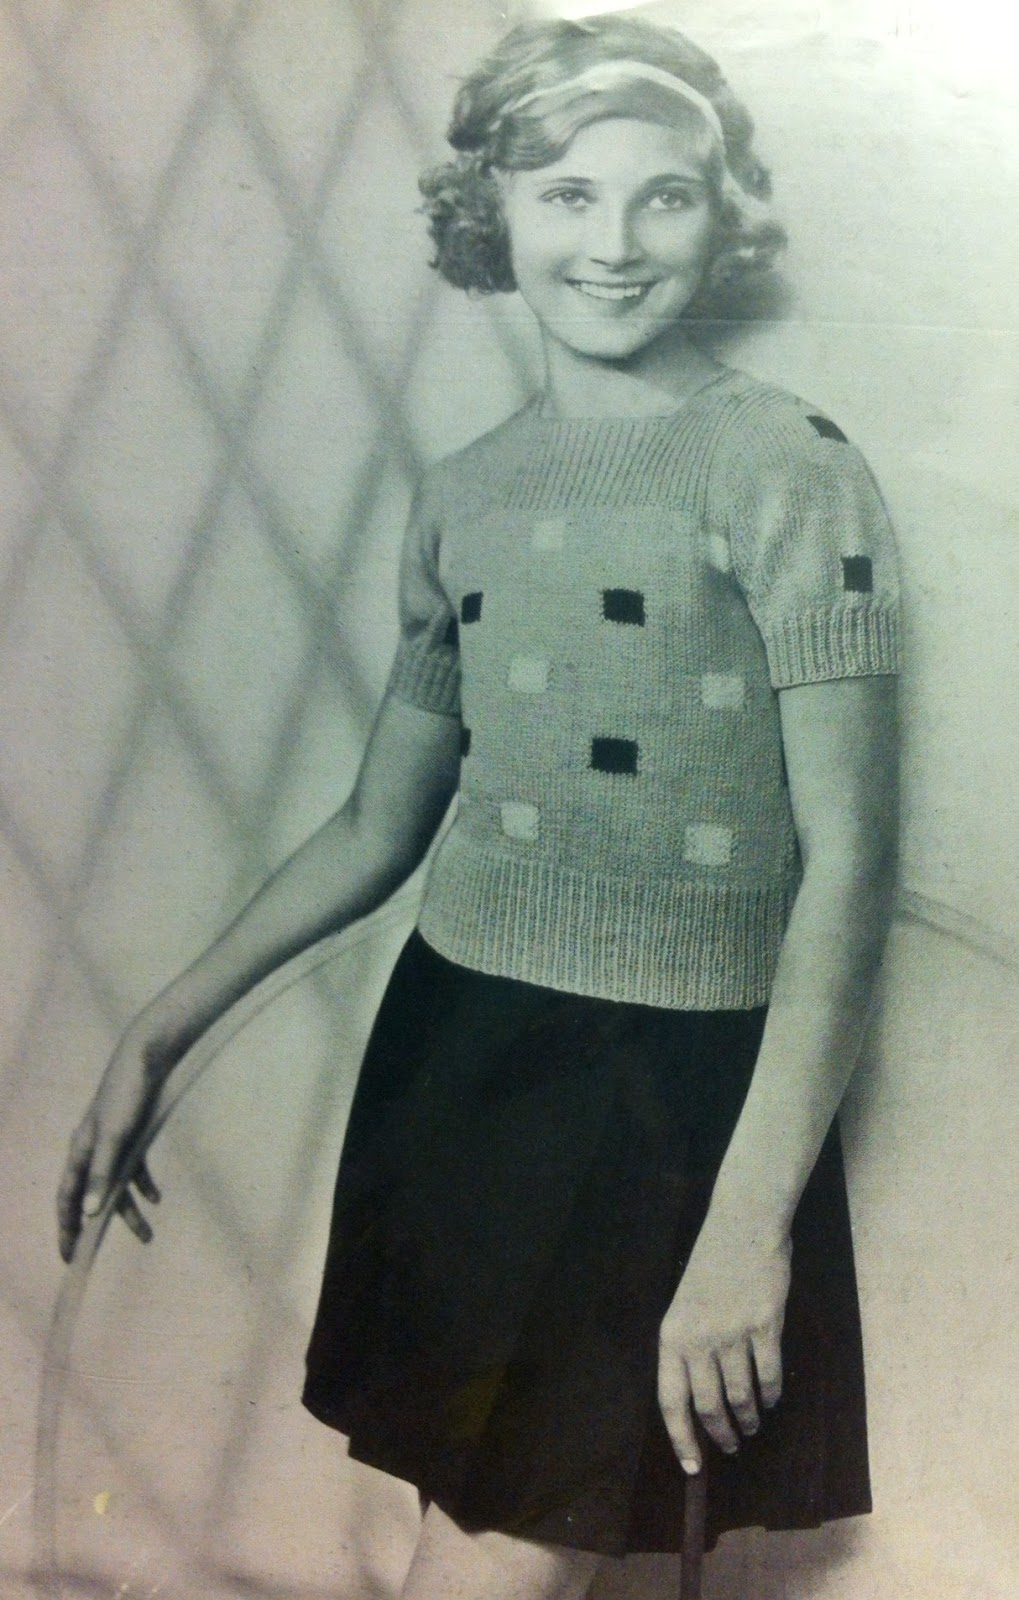 Patons Knitting Pattern Archive : What Kate-Em did next.: Patons and Baldwins archive part one - 1930s jum...